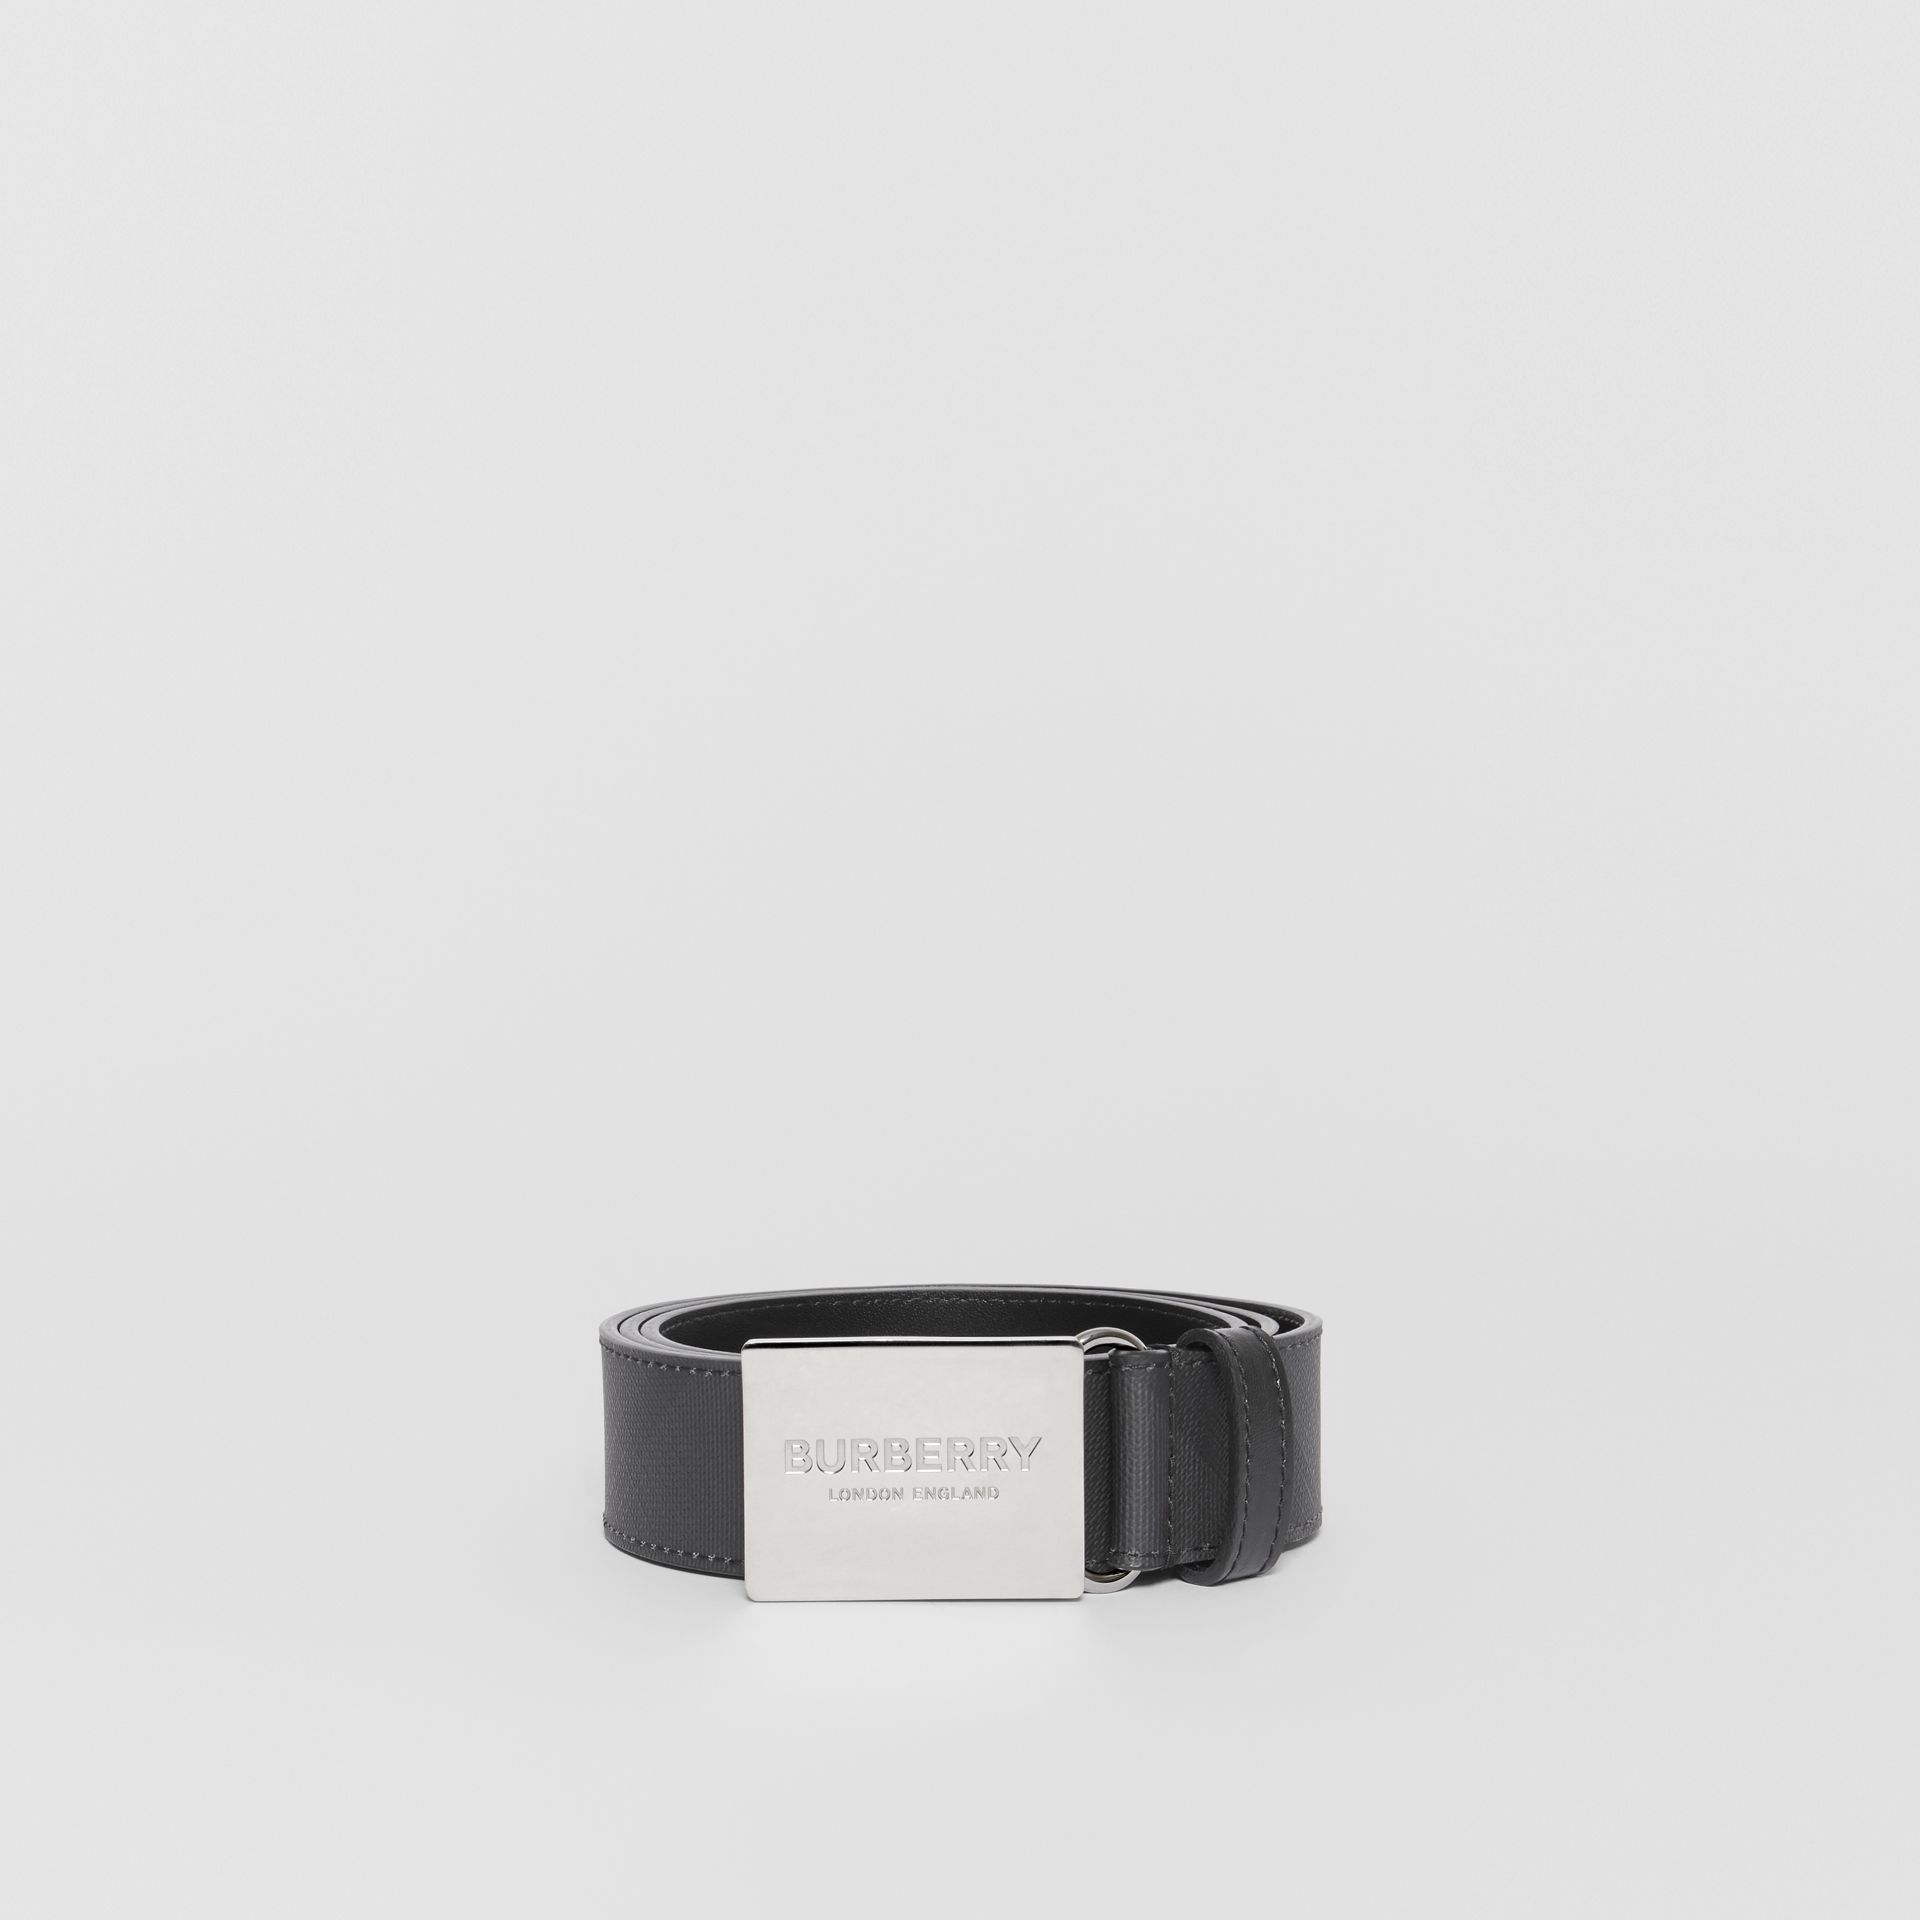 Plaque Buckle London Check and Leather Belt in Dark Charcoal/ Black - Men | Burberry Canada - gallery image 3